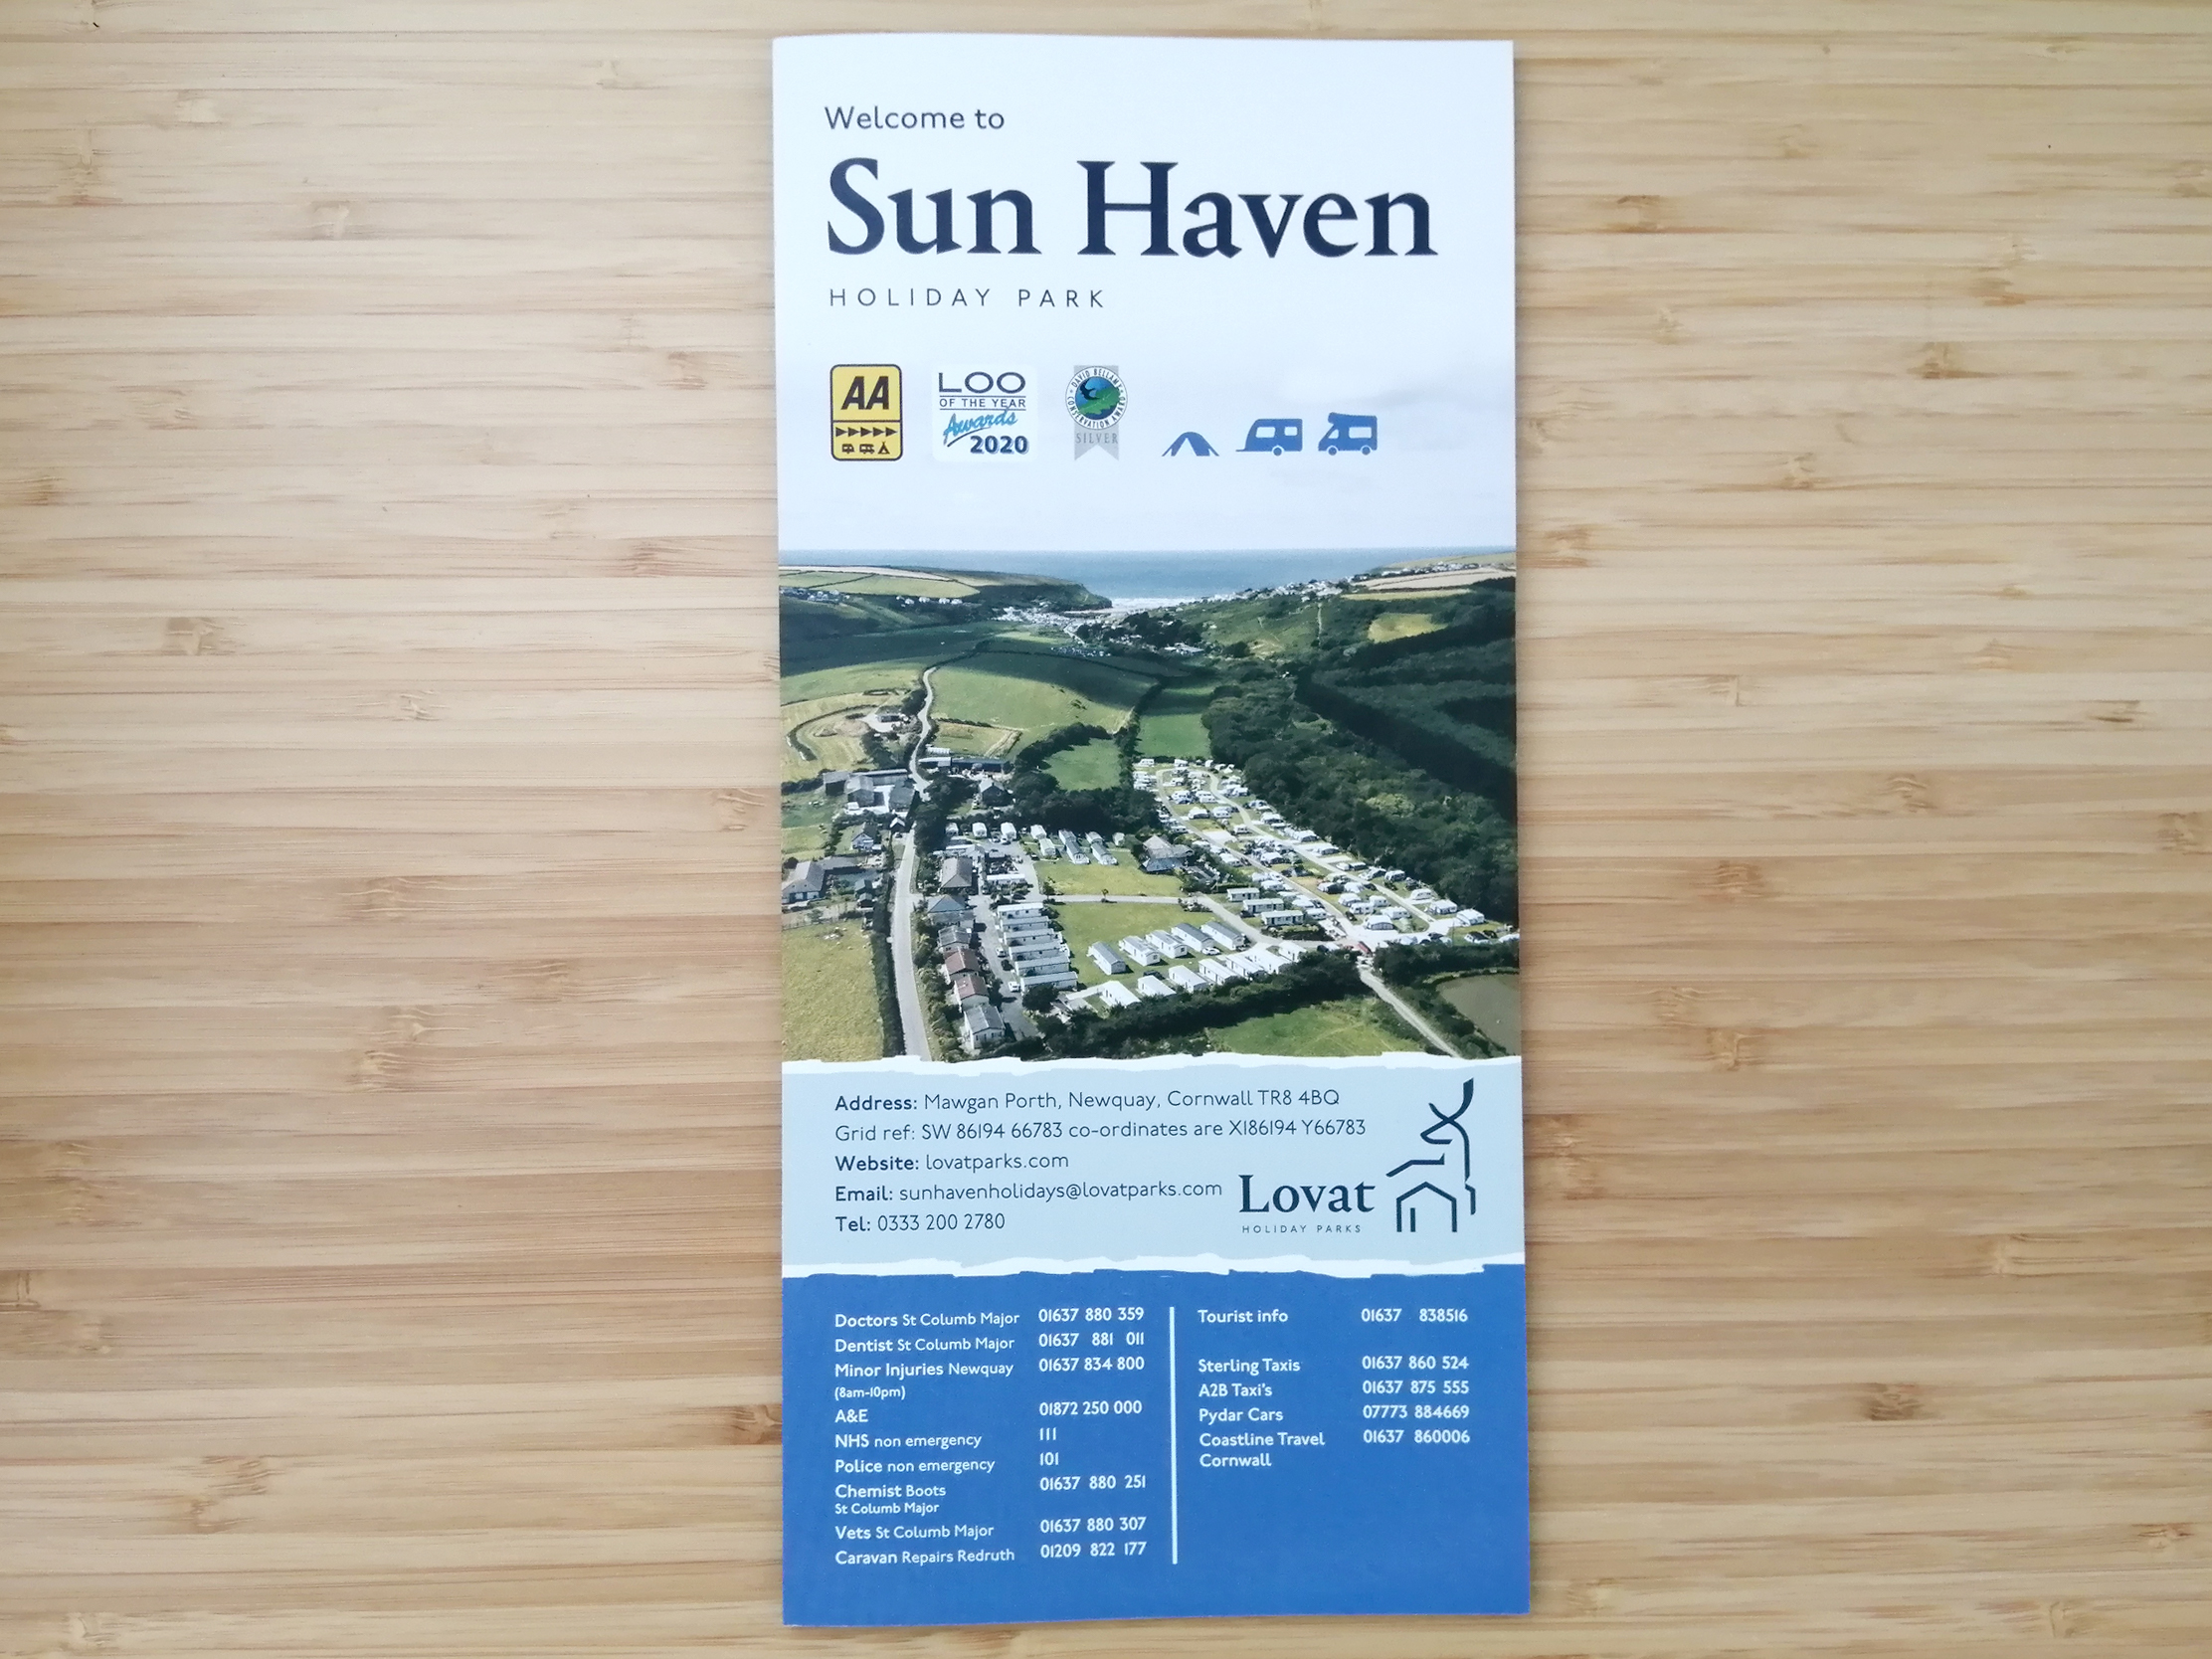 Sun Haven welcome leaflet cover